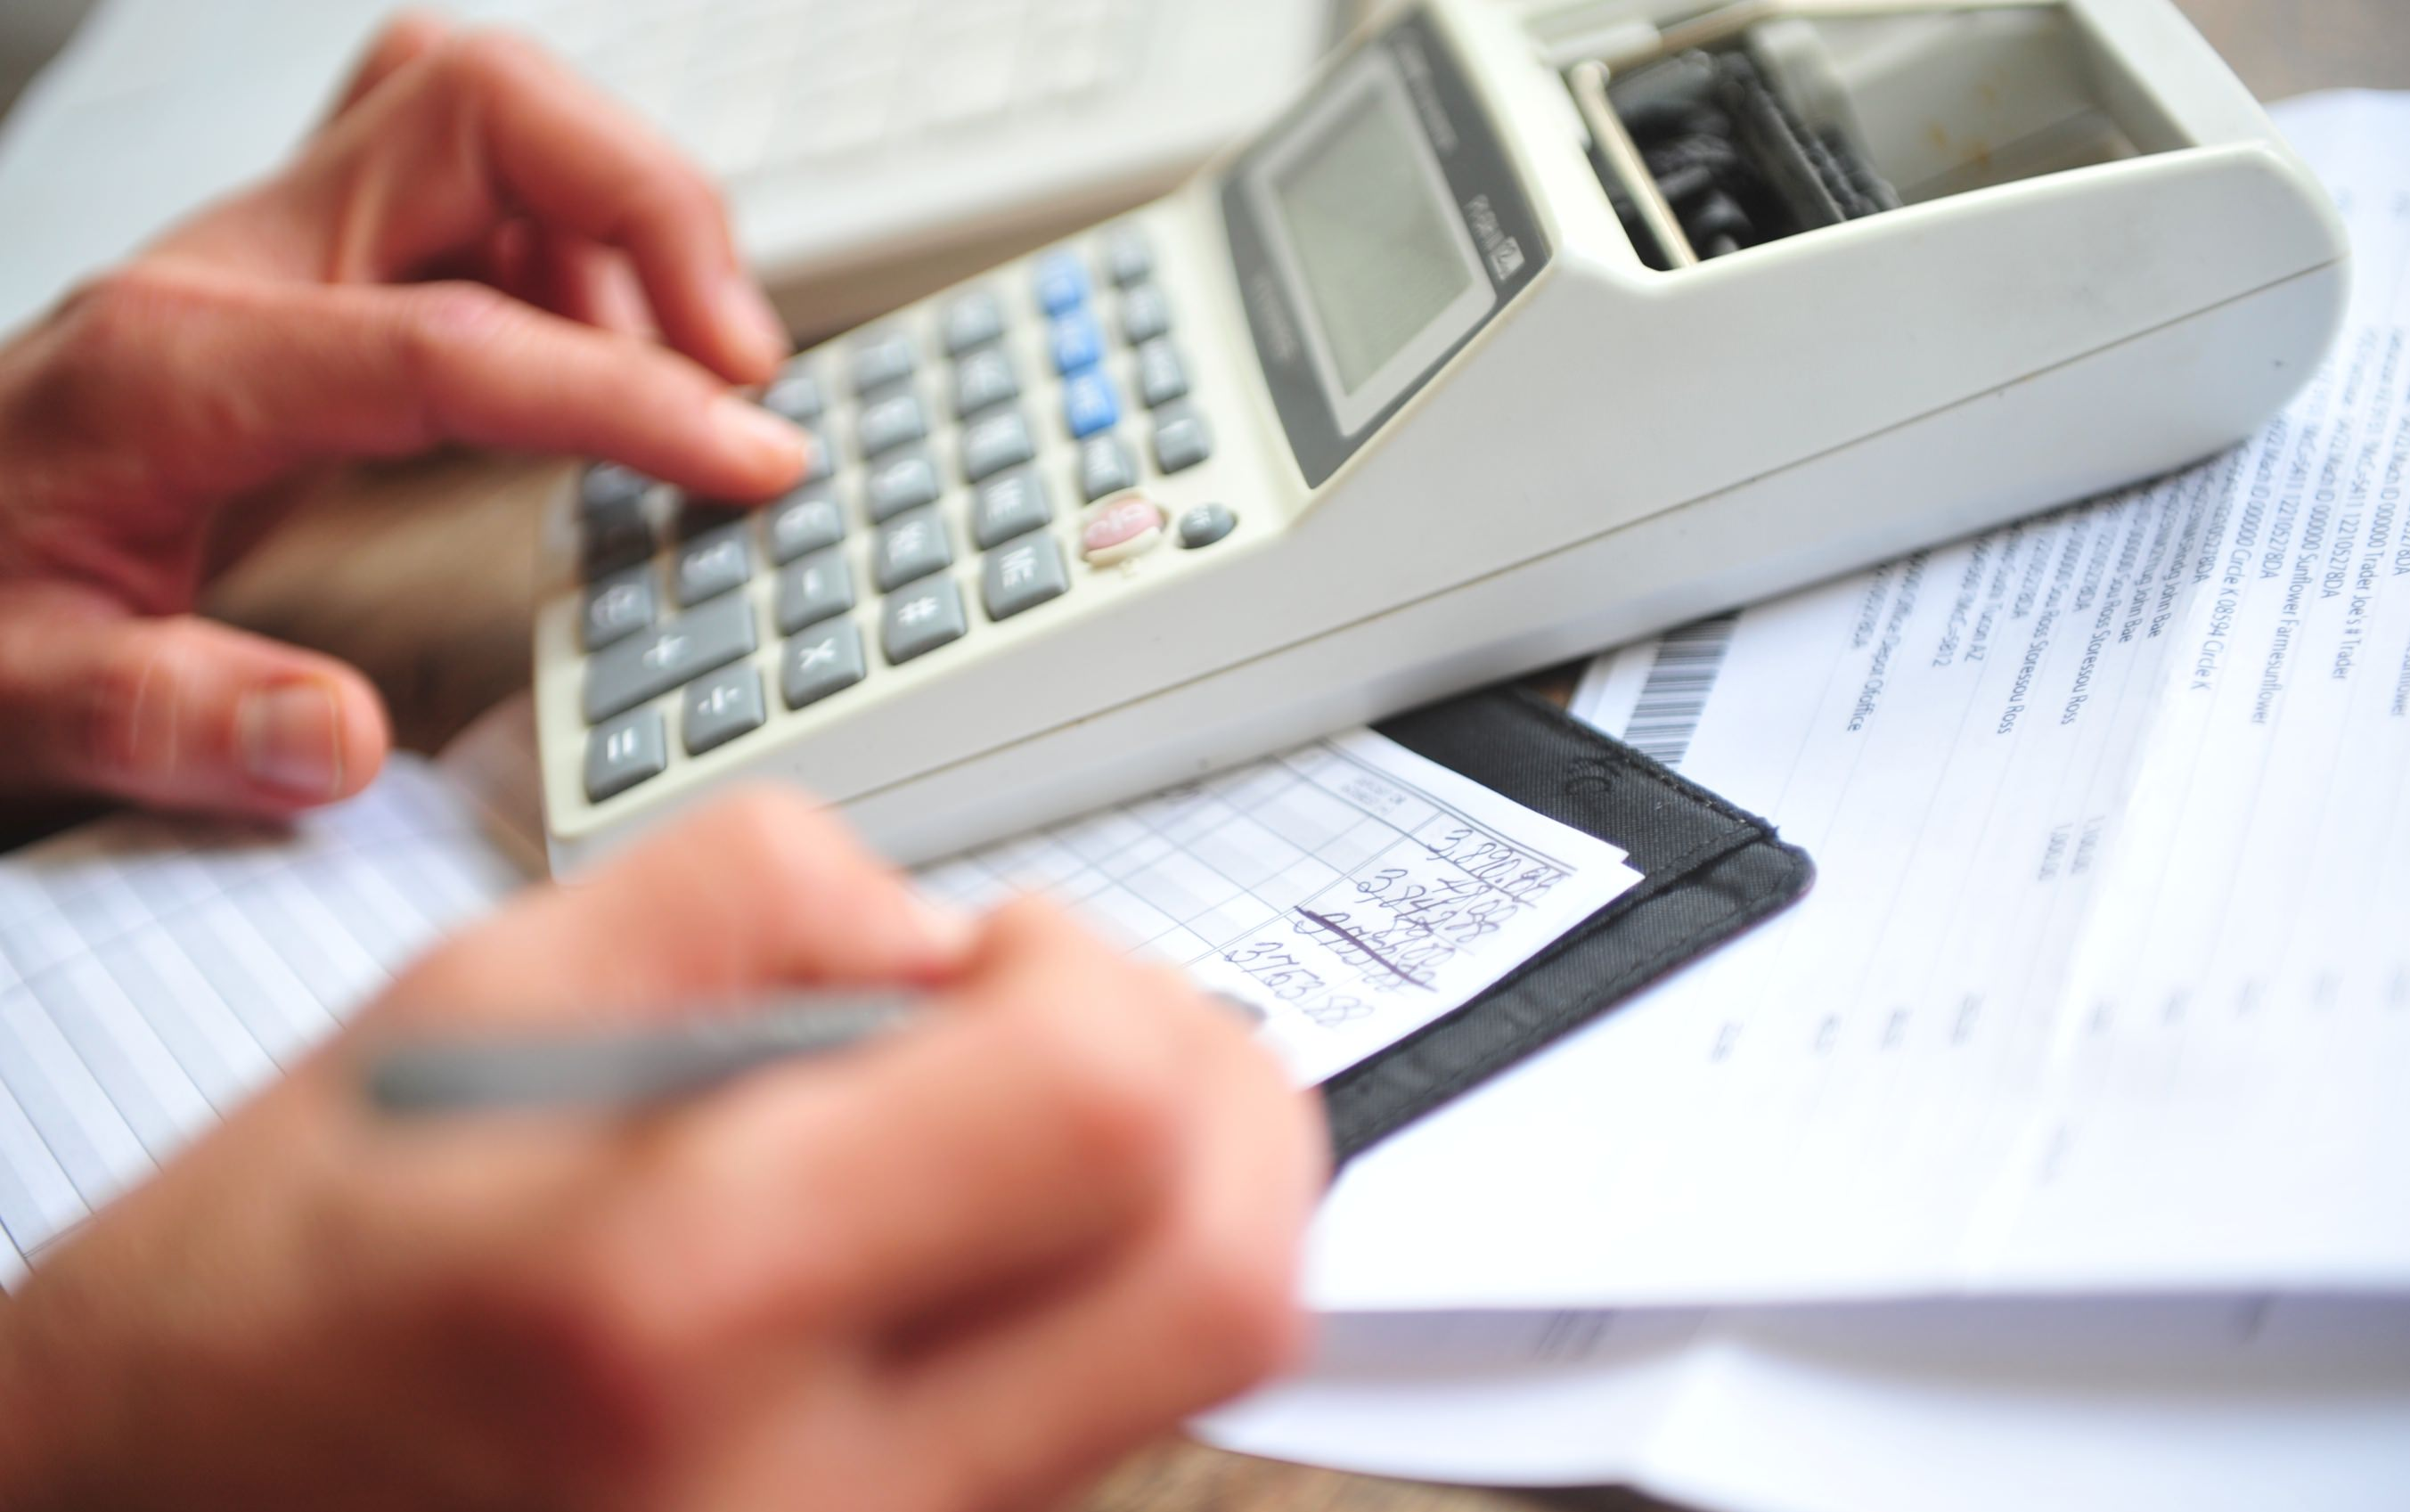 Forget balancing checkbooks: three practices to help you learn financial responsibility